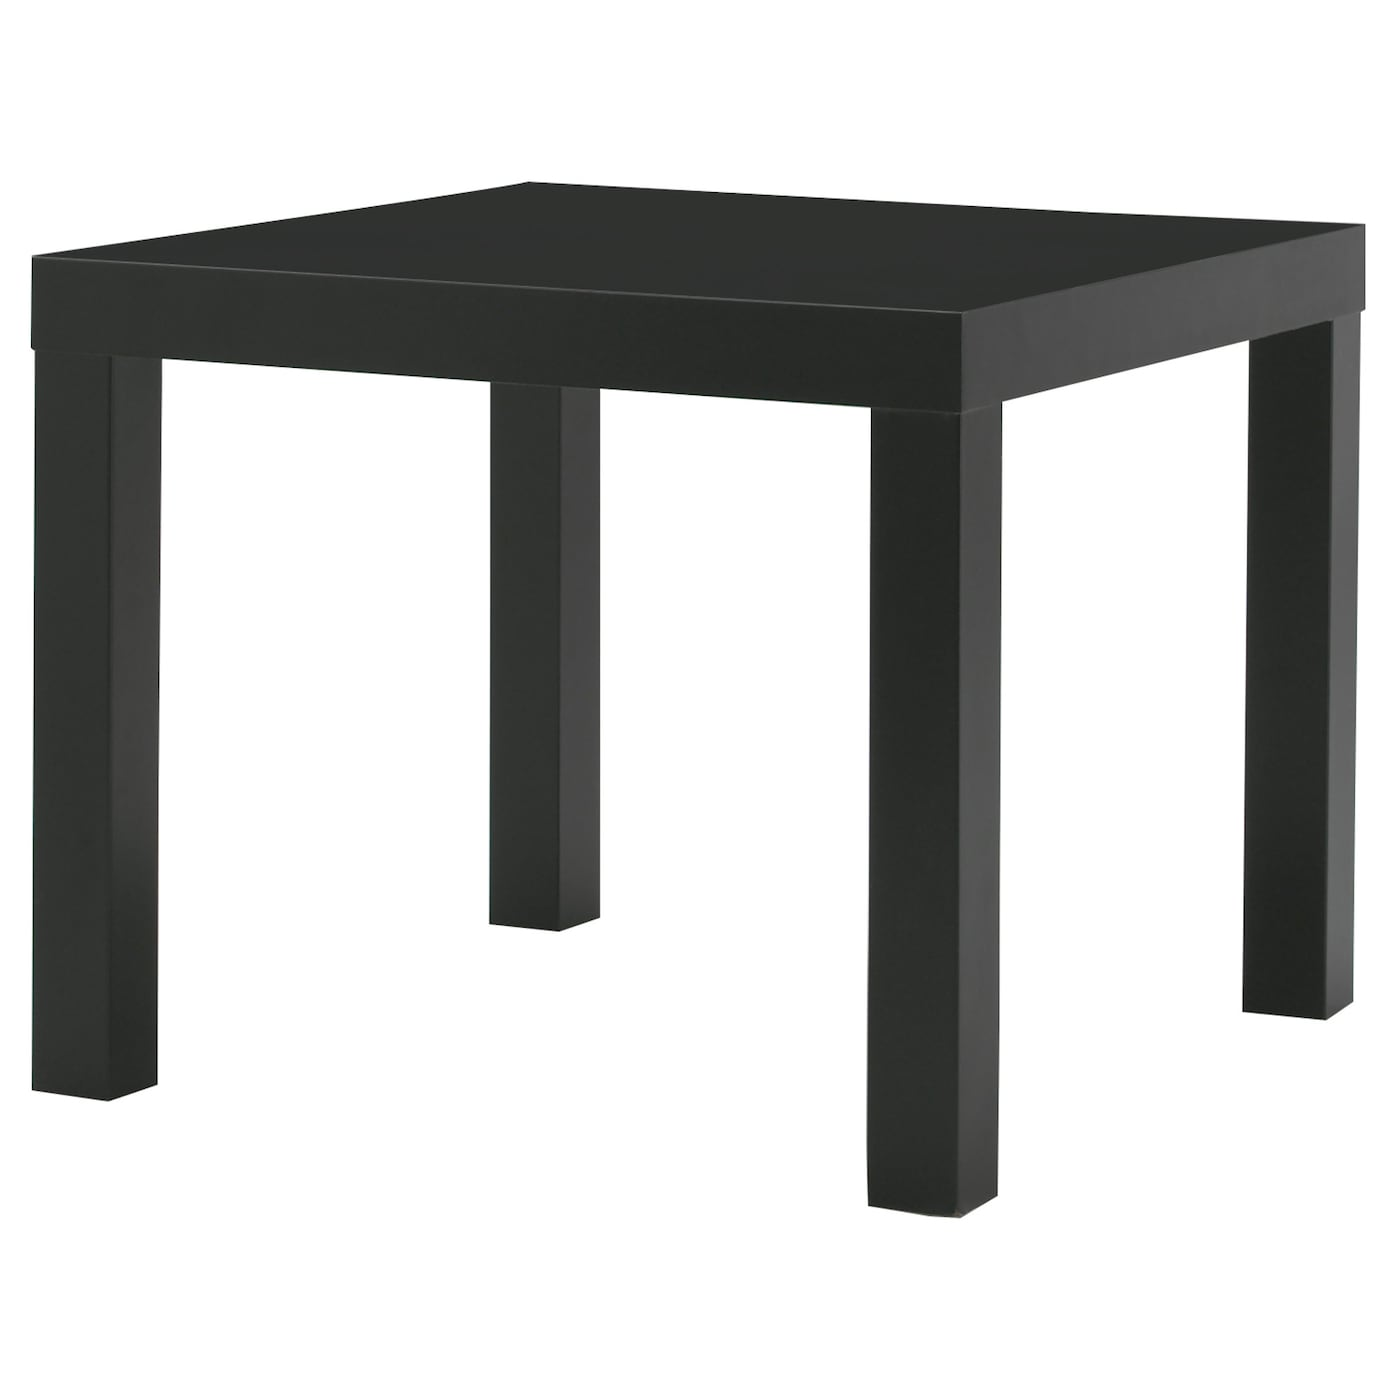 LACK Side table - black 12x12 cm